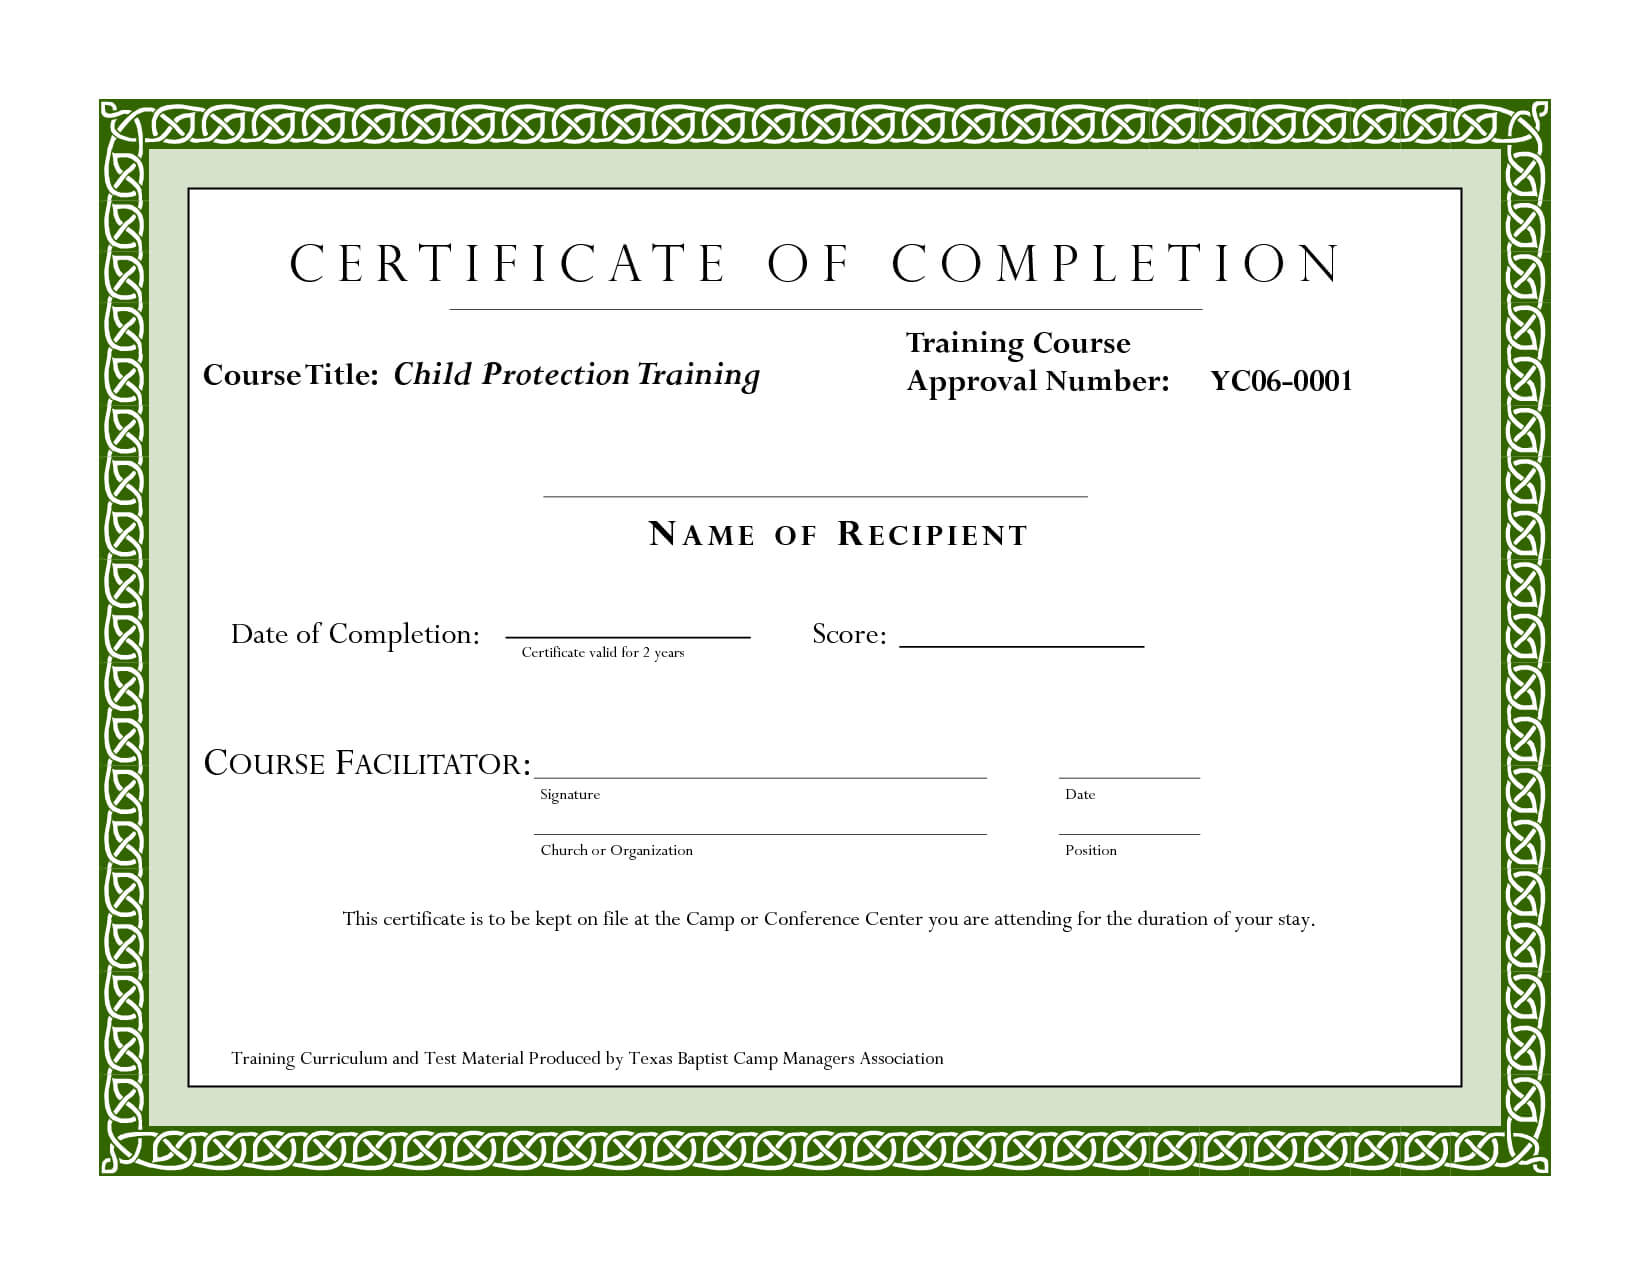 Course Completion Certificate Template | Certificate Of for Certificate Template For Project Completion